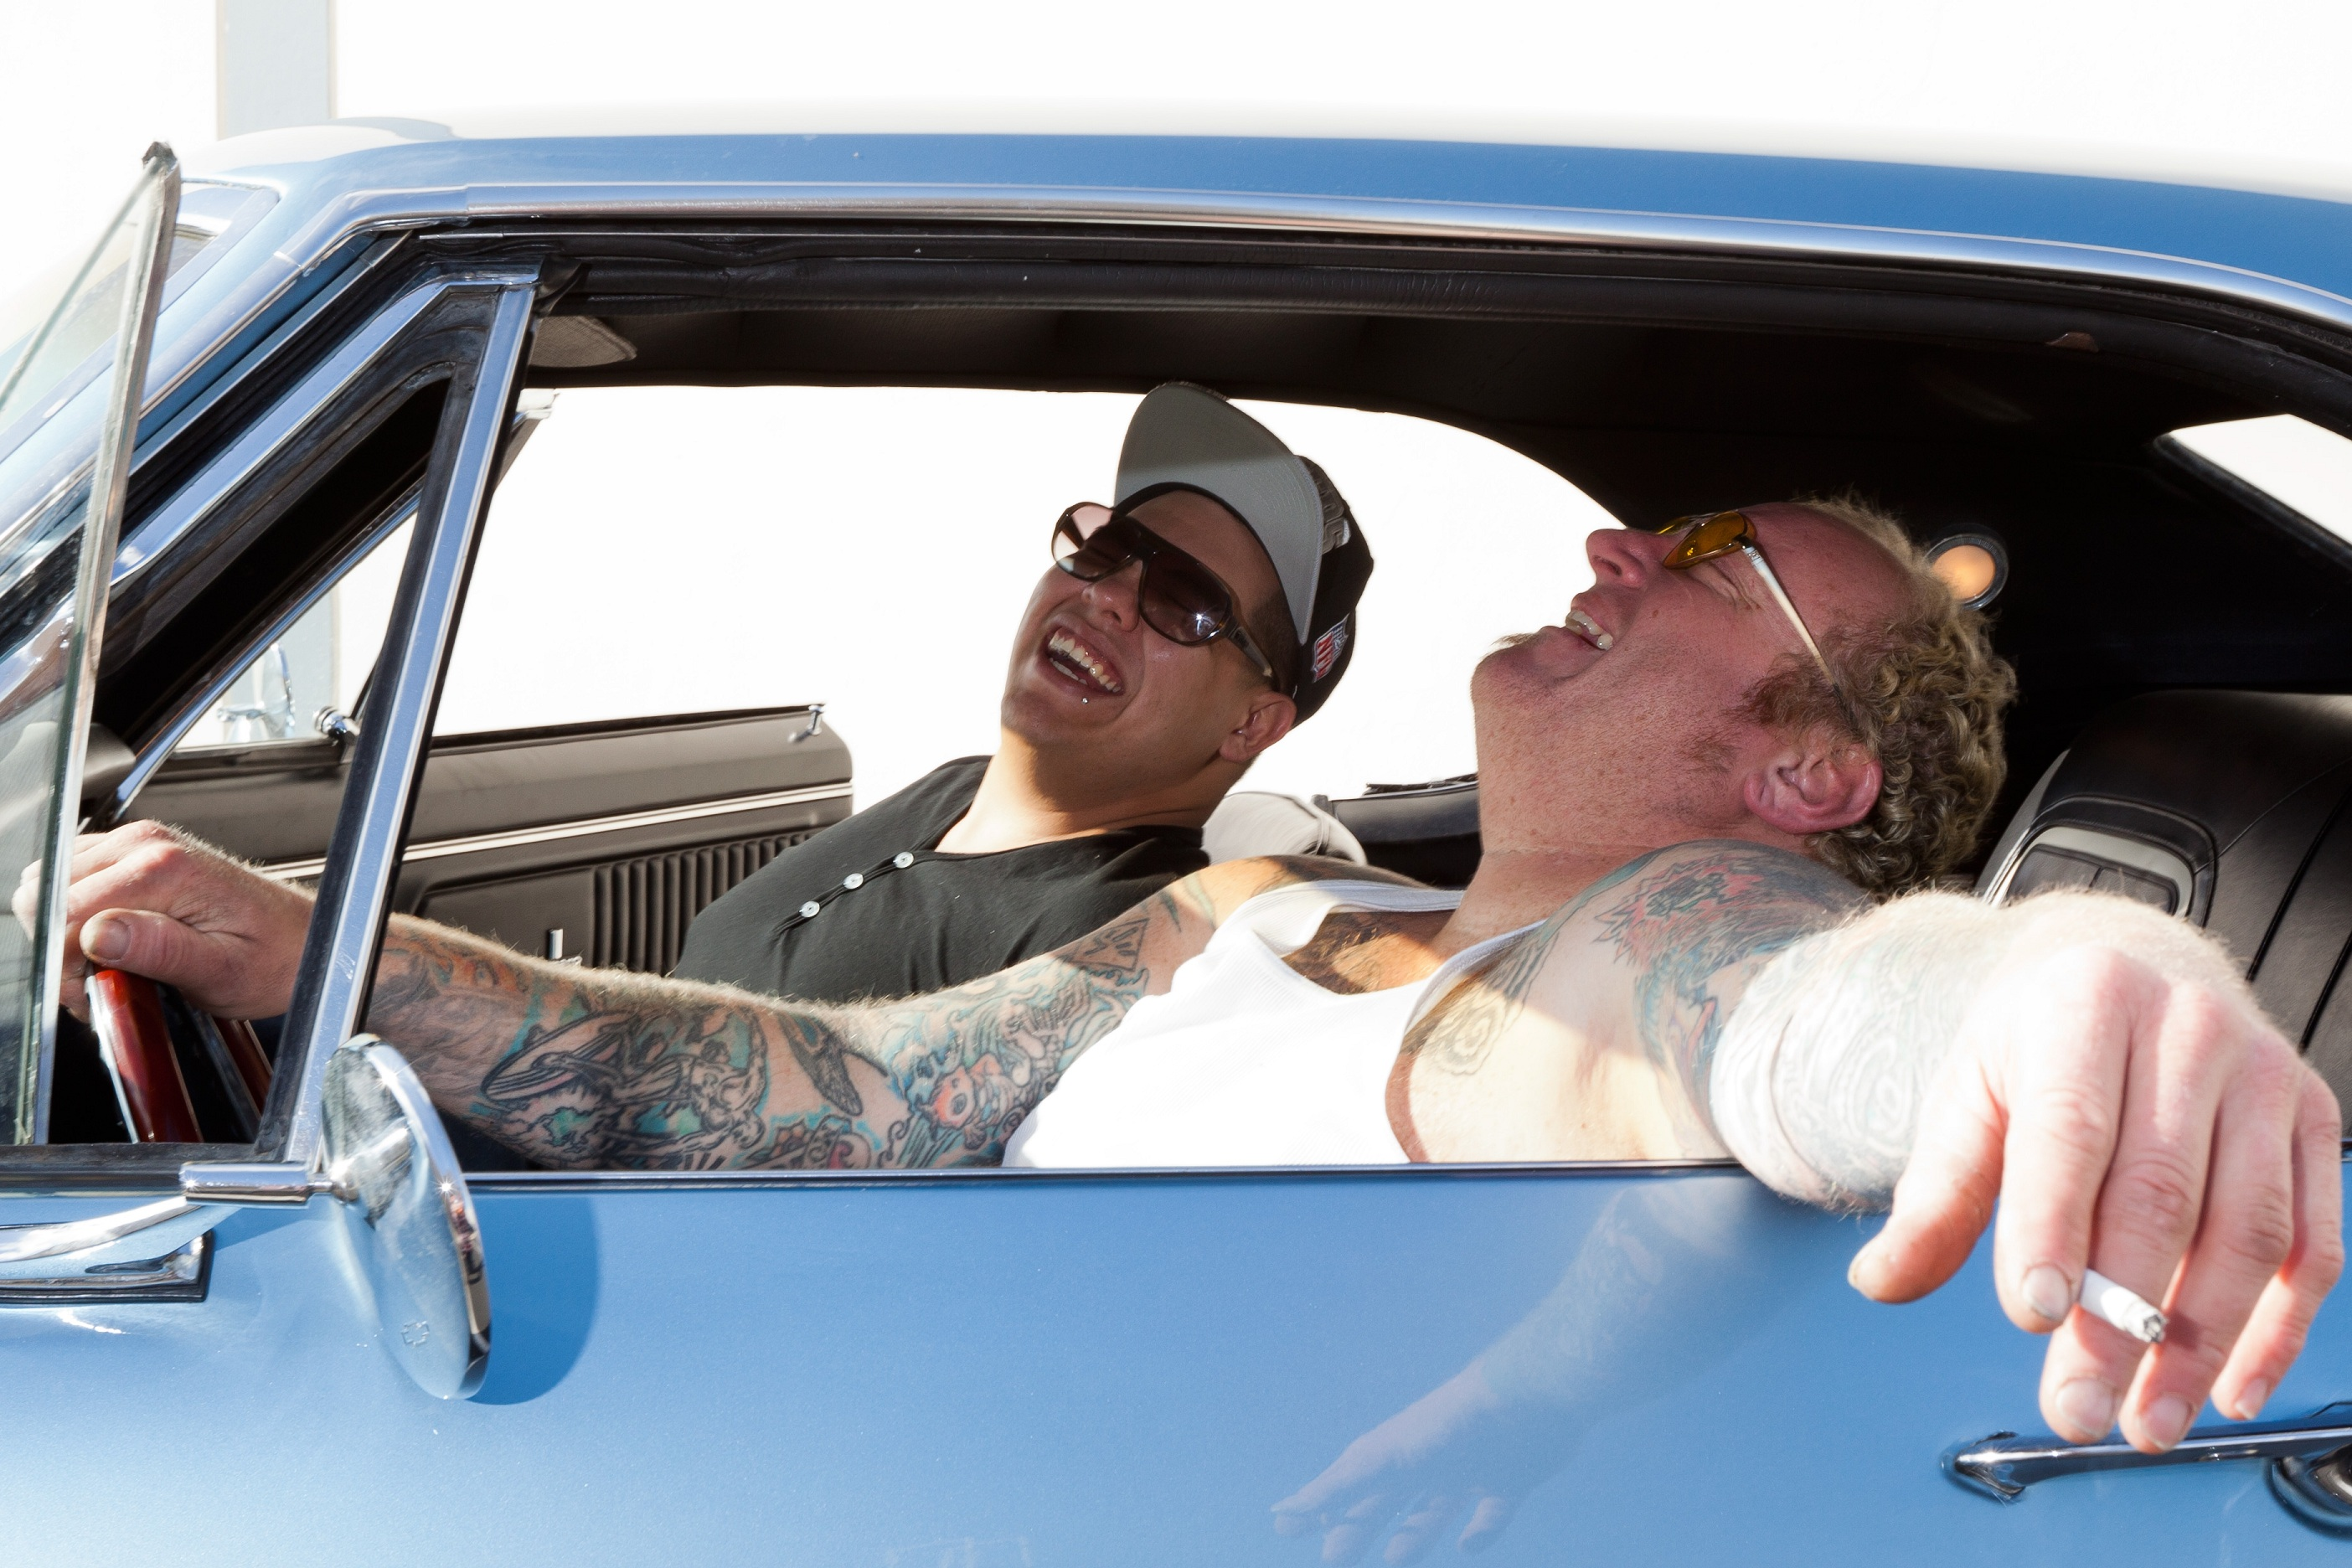 Rome of Sublime With Rome